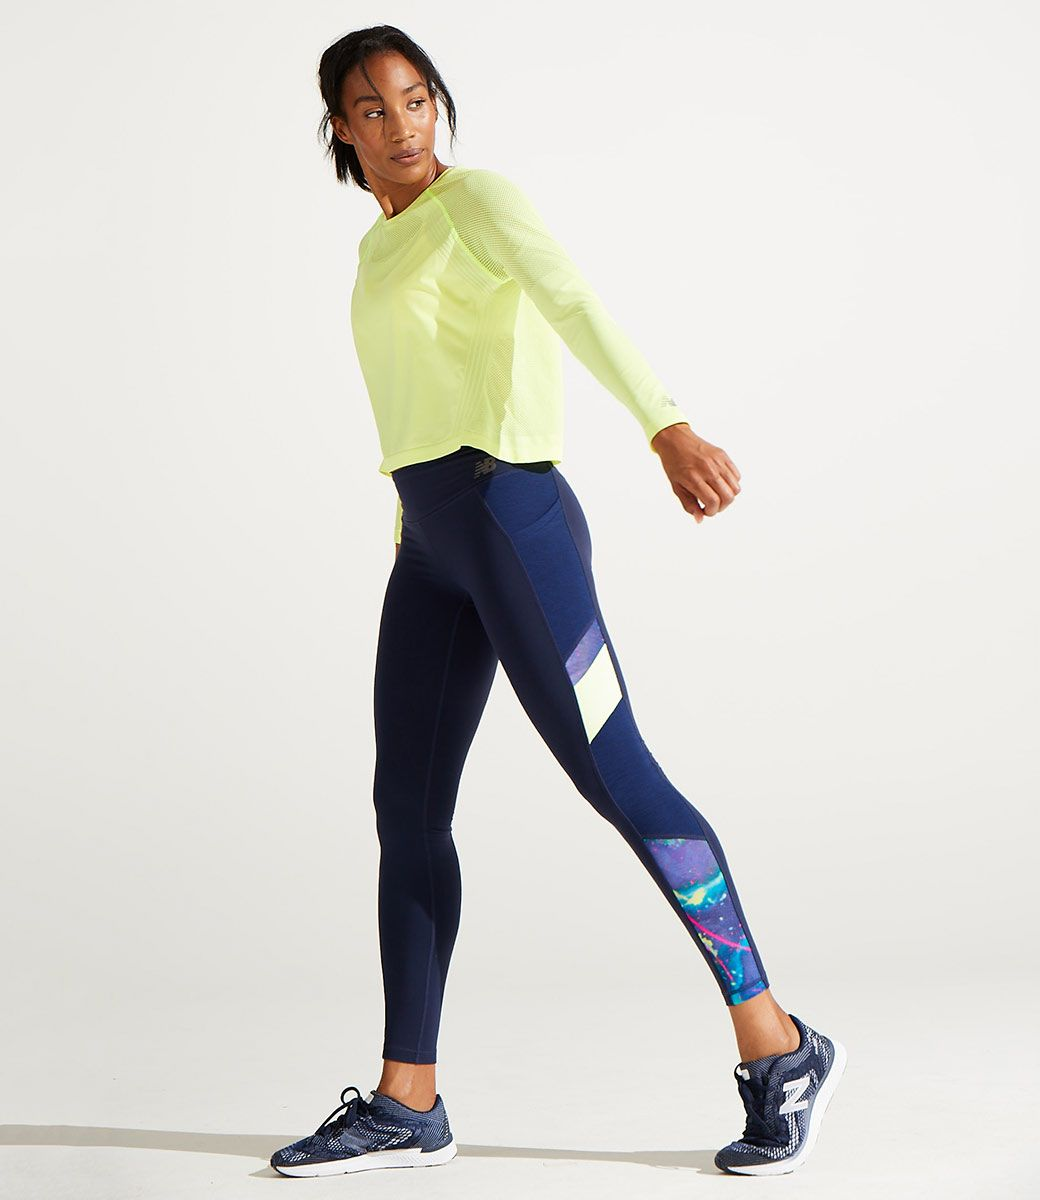 New Balance US Womens Stay Fit While You Travel Look 3,